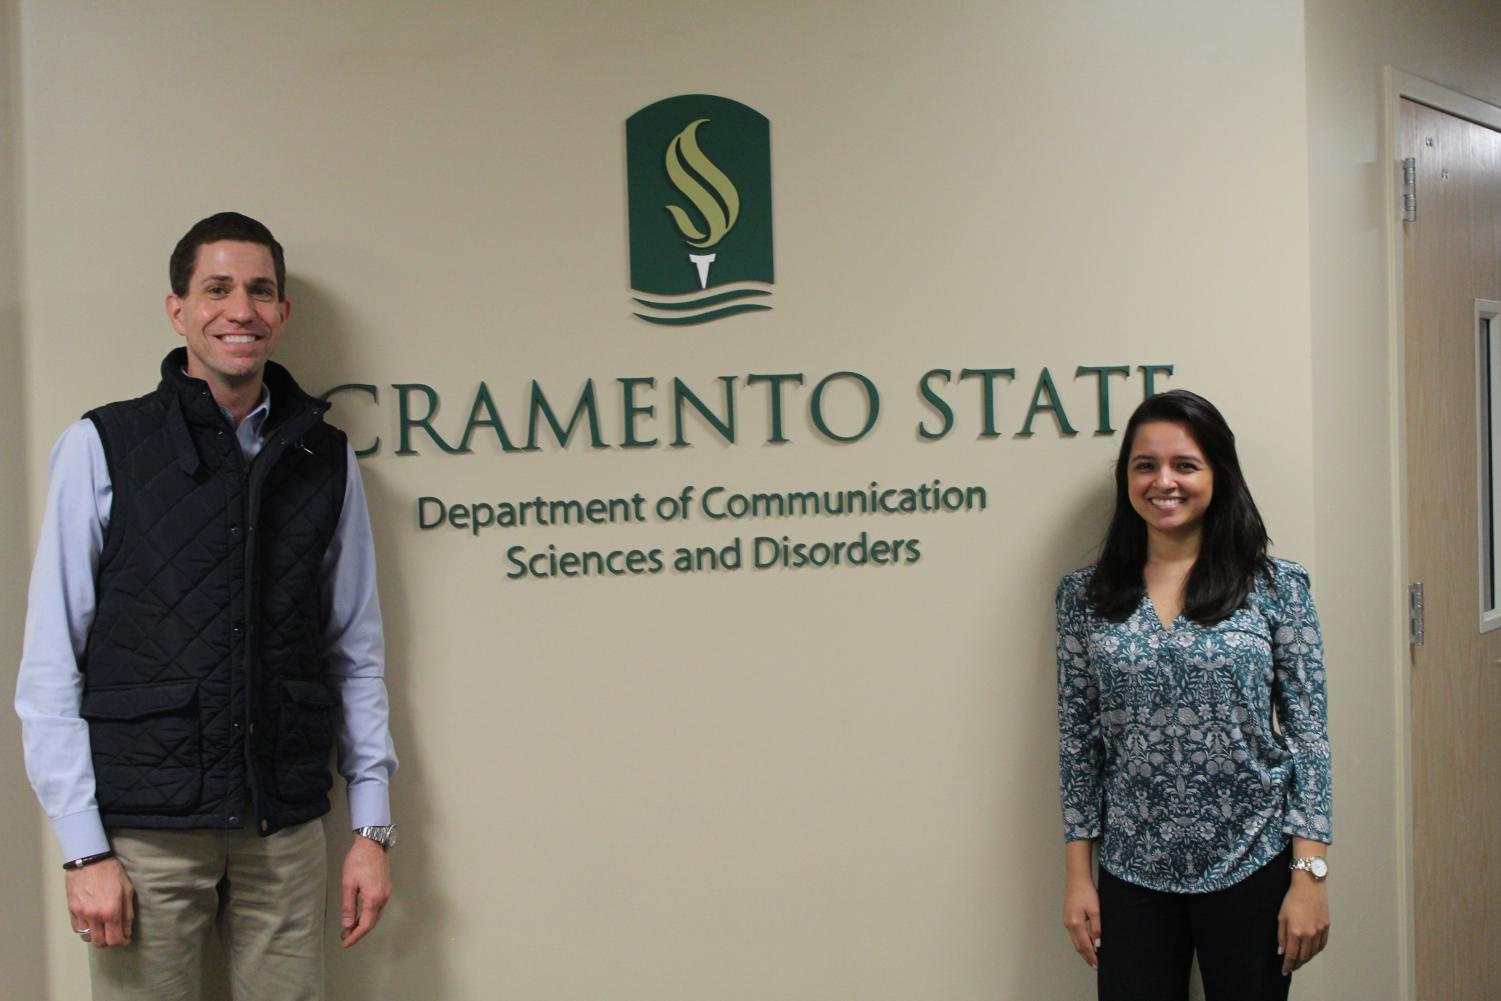 Department Chair of Communication Sciences and Disorders, Robert Pieretti and Laura Gaeta, Doctorate of Audiology director, pose in front of the entryway to their department's office on Jan. 31. The program is available for enrollment by fall 2020.